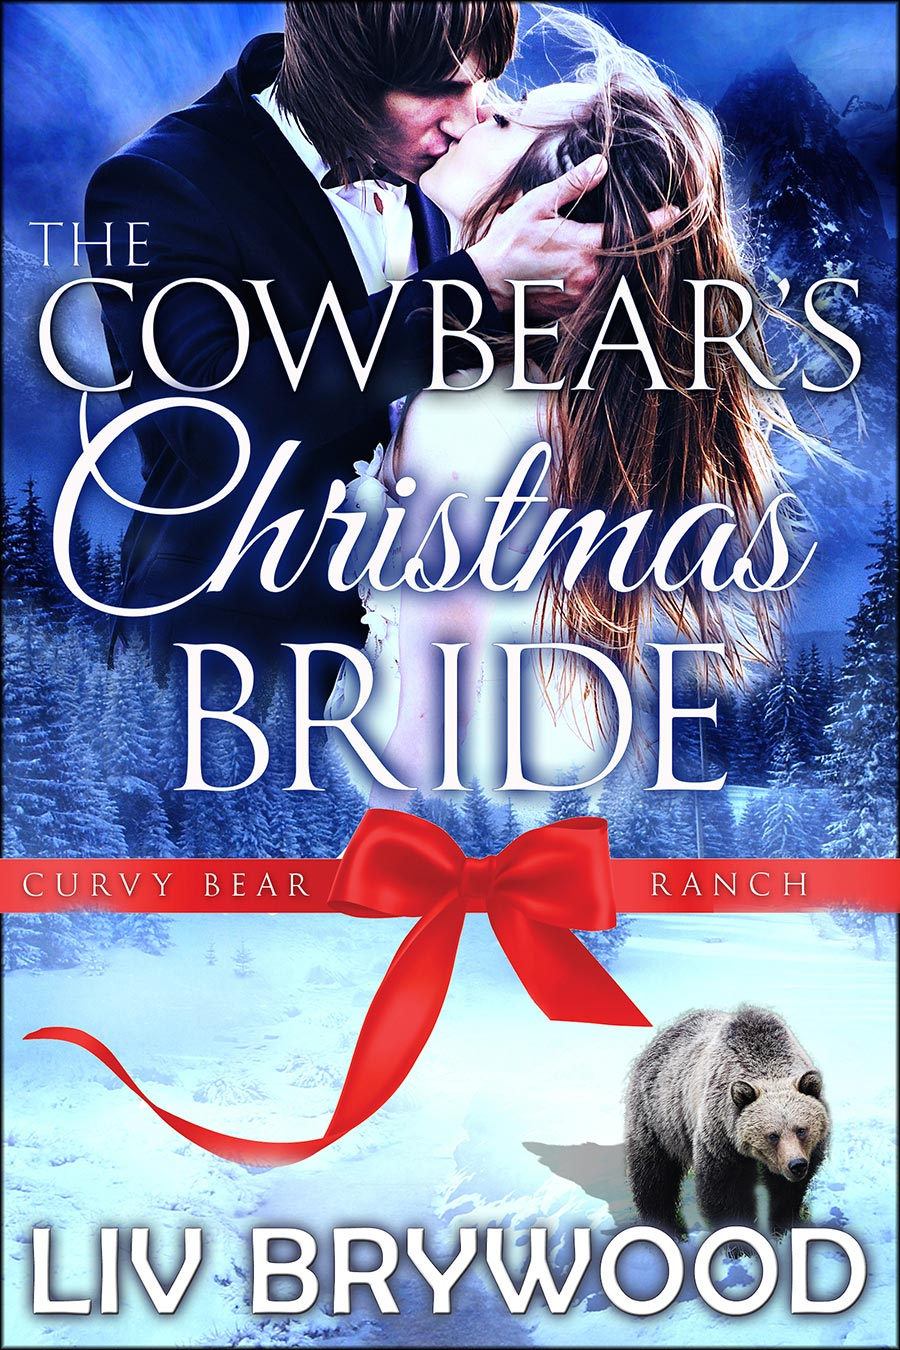 The-Cowbear's-Christmas-Bride-1600.jpg